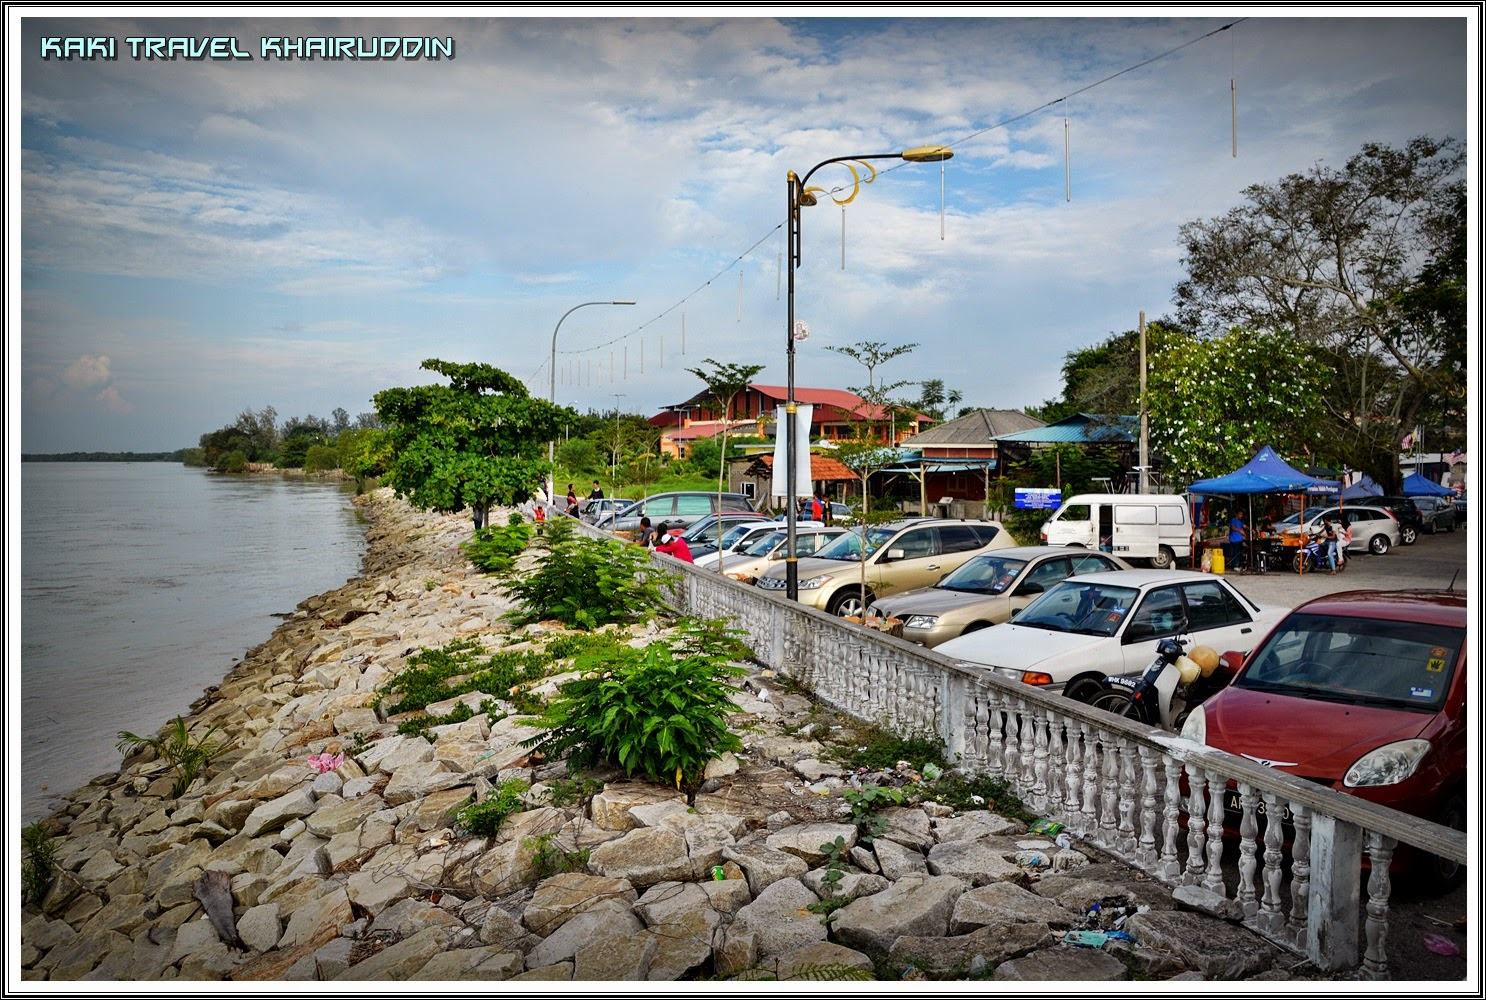 Bagan Datoh Malaysia  city pictures gallery : ... : From Malaysia to the World with Khairuddin: Jetty Bagan Datoh Perak